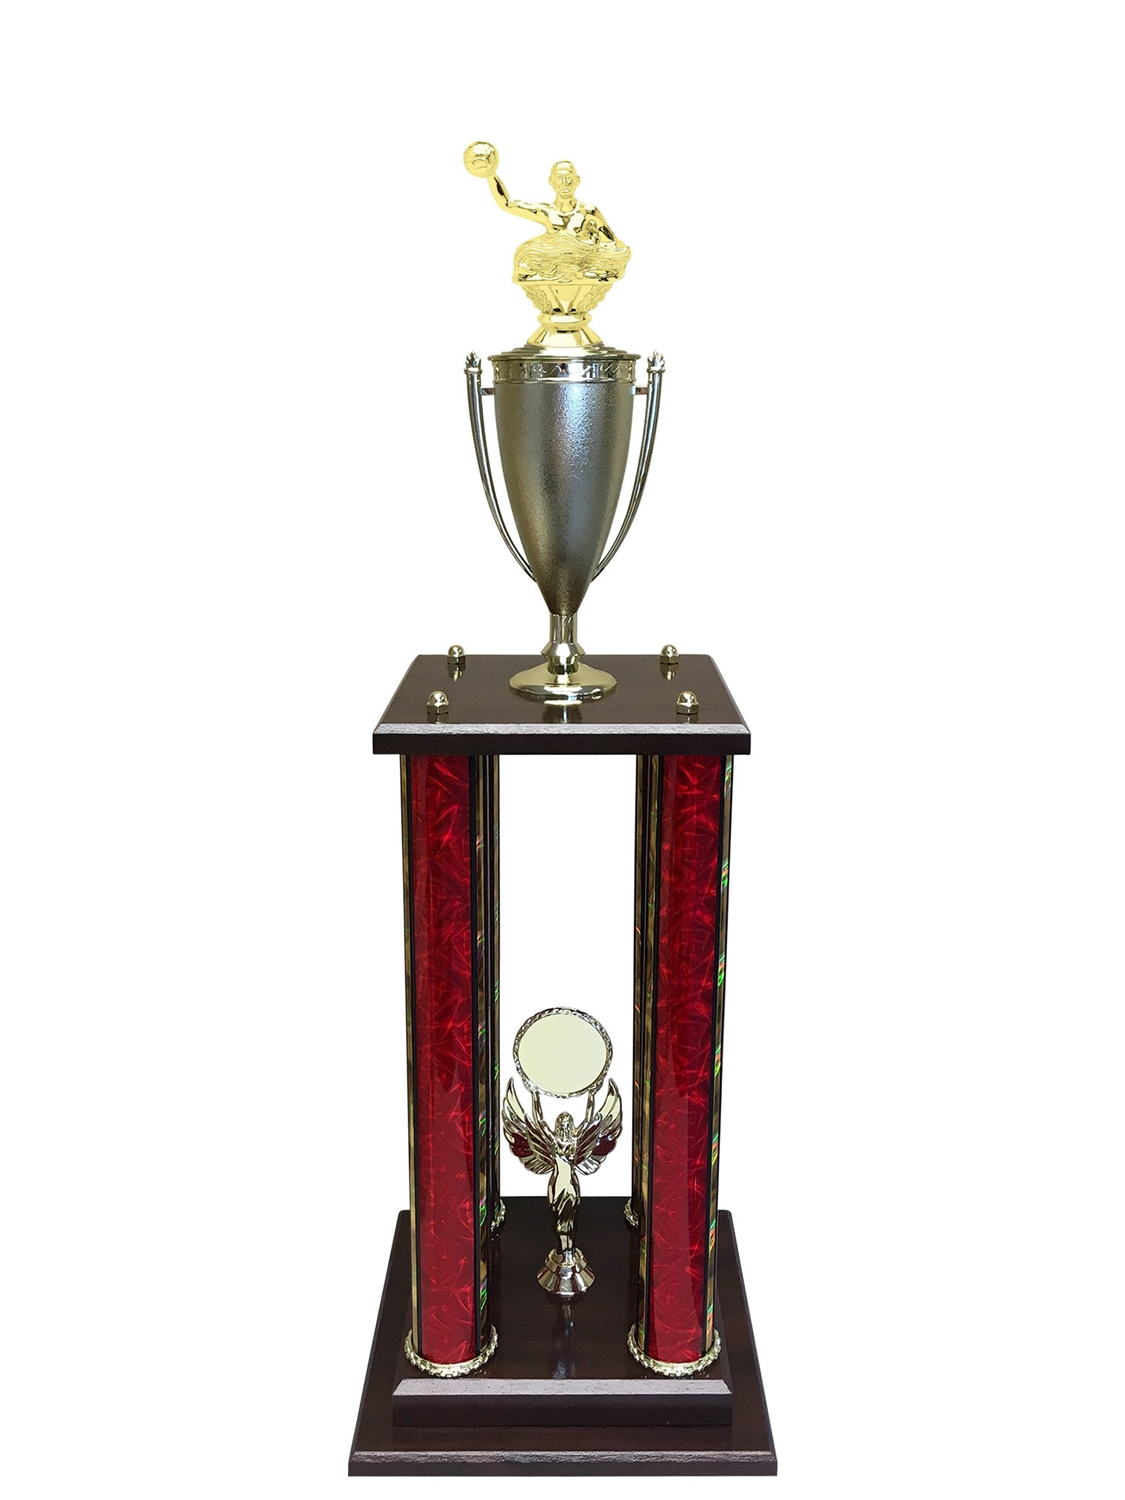 4 Post Waterpolo Trophy in 11 colors & 3 sizes